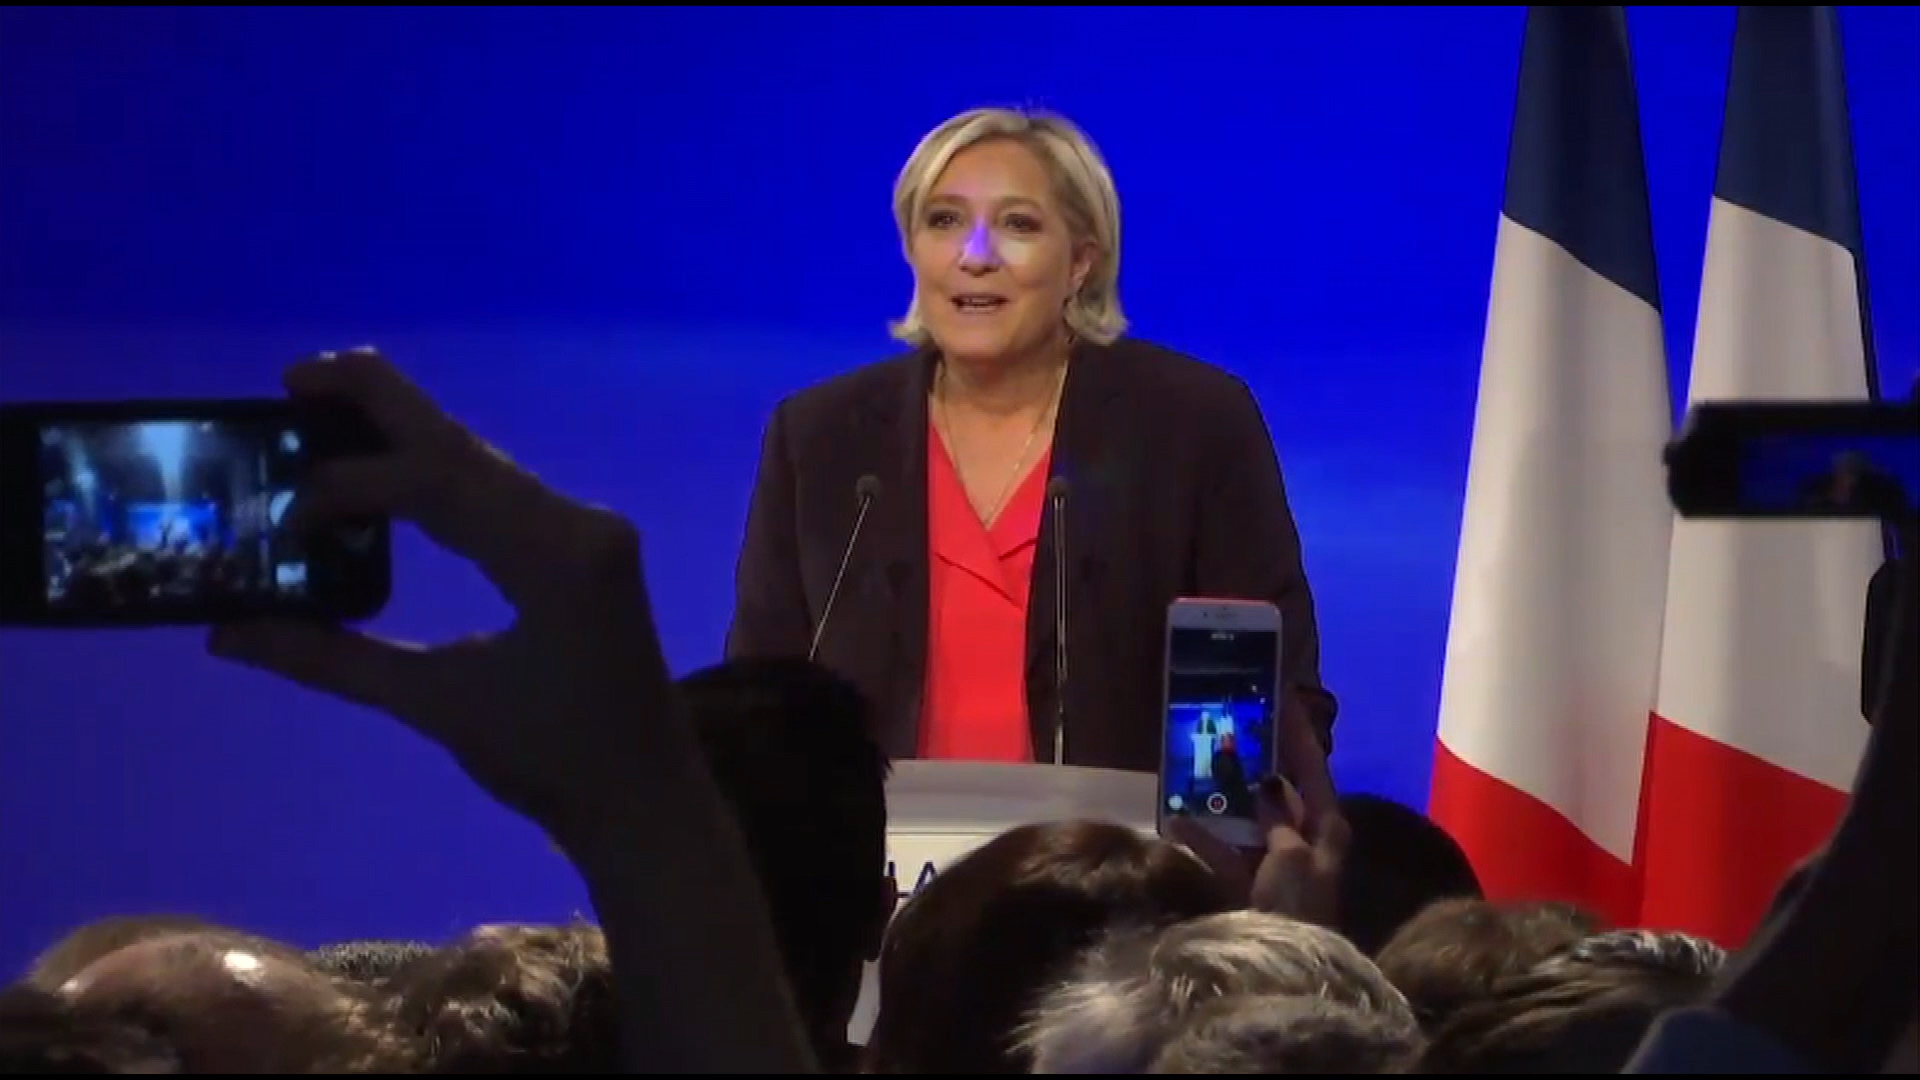 Le Pen's defeat is good news for Trump